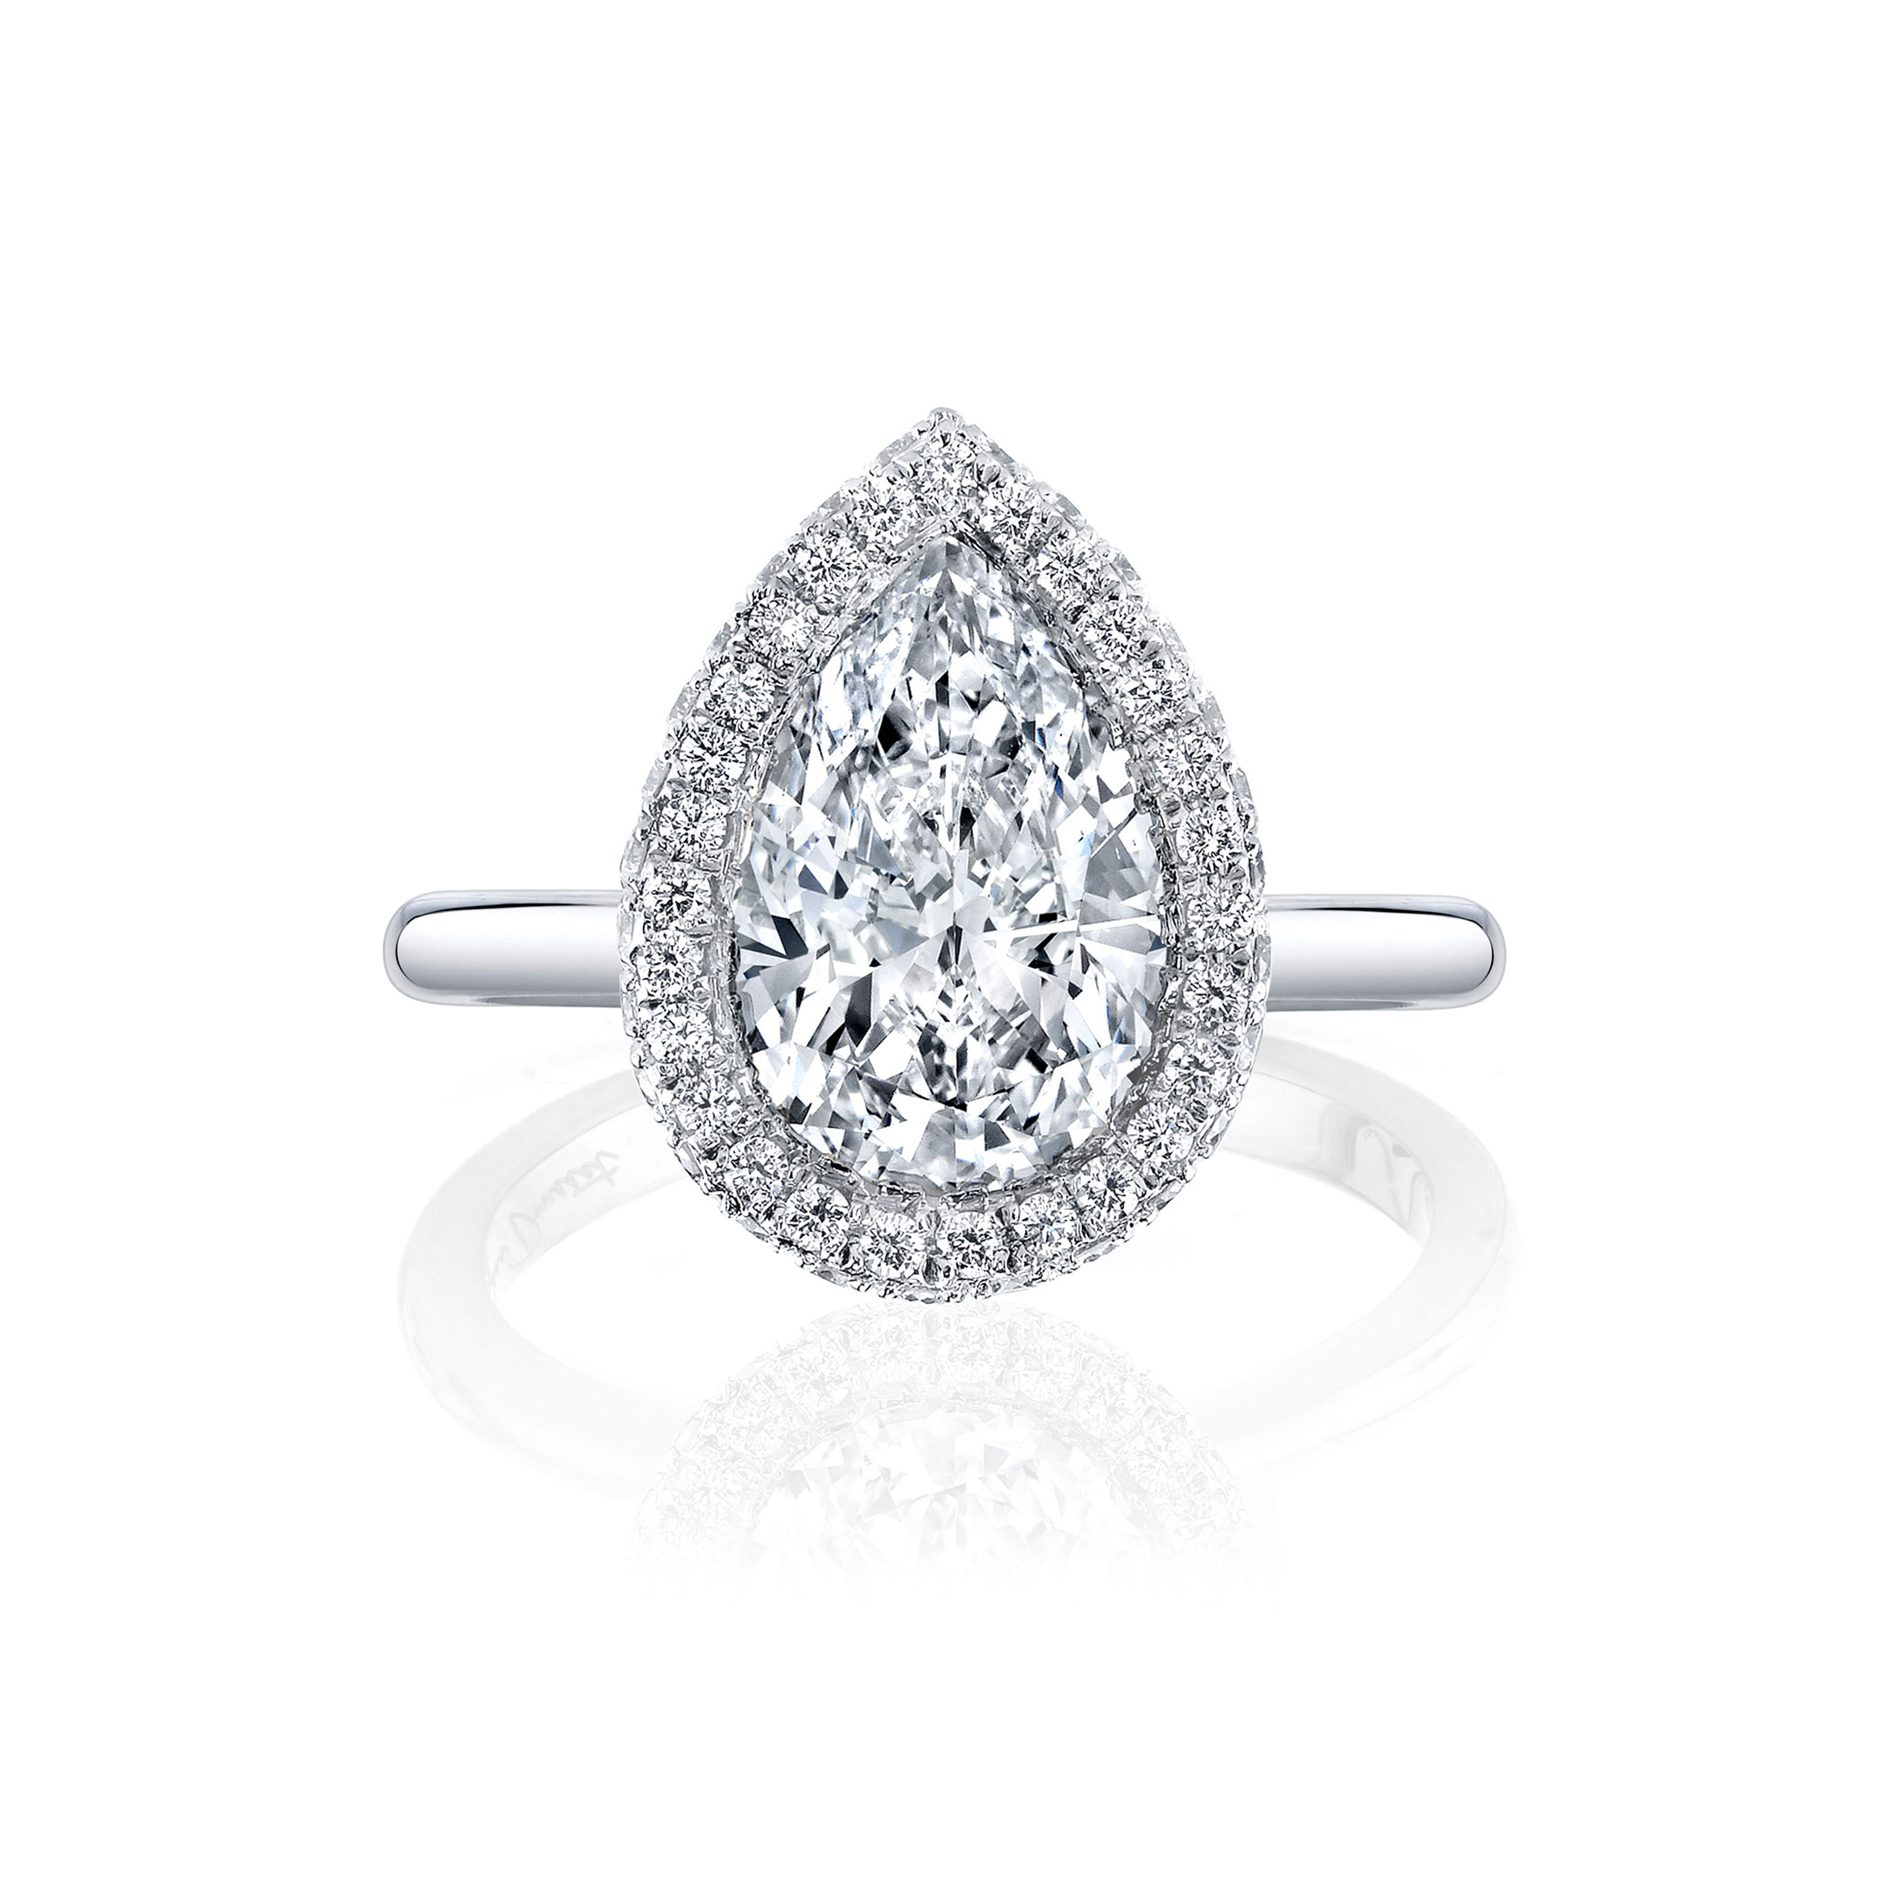 Colette Seamless Halo® Pear Cut Engagement Ring White Gold Solid Band